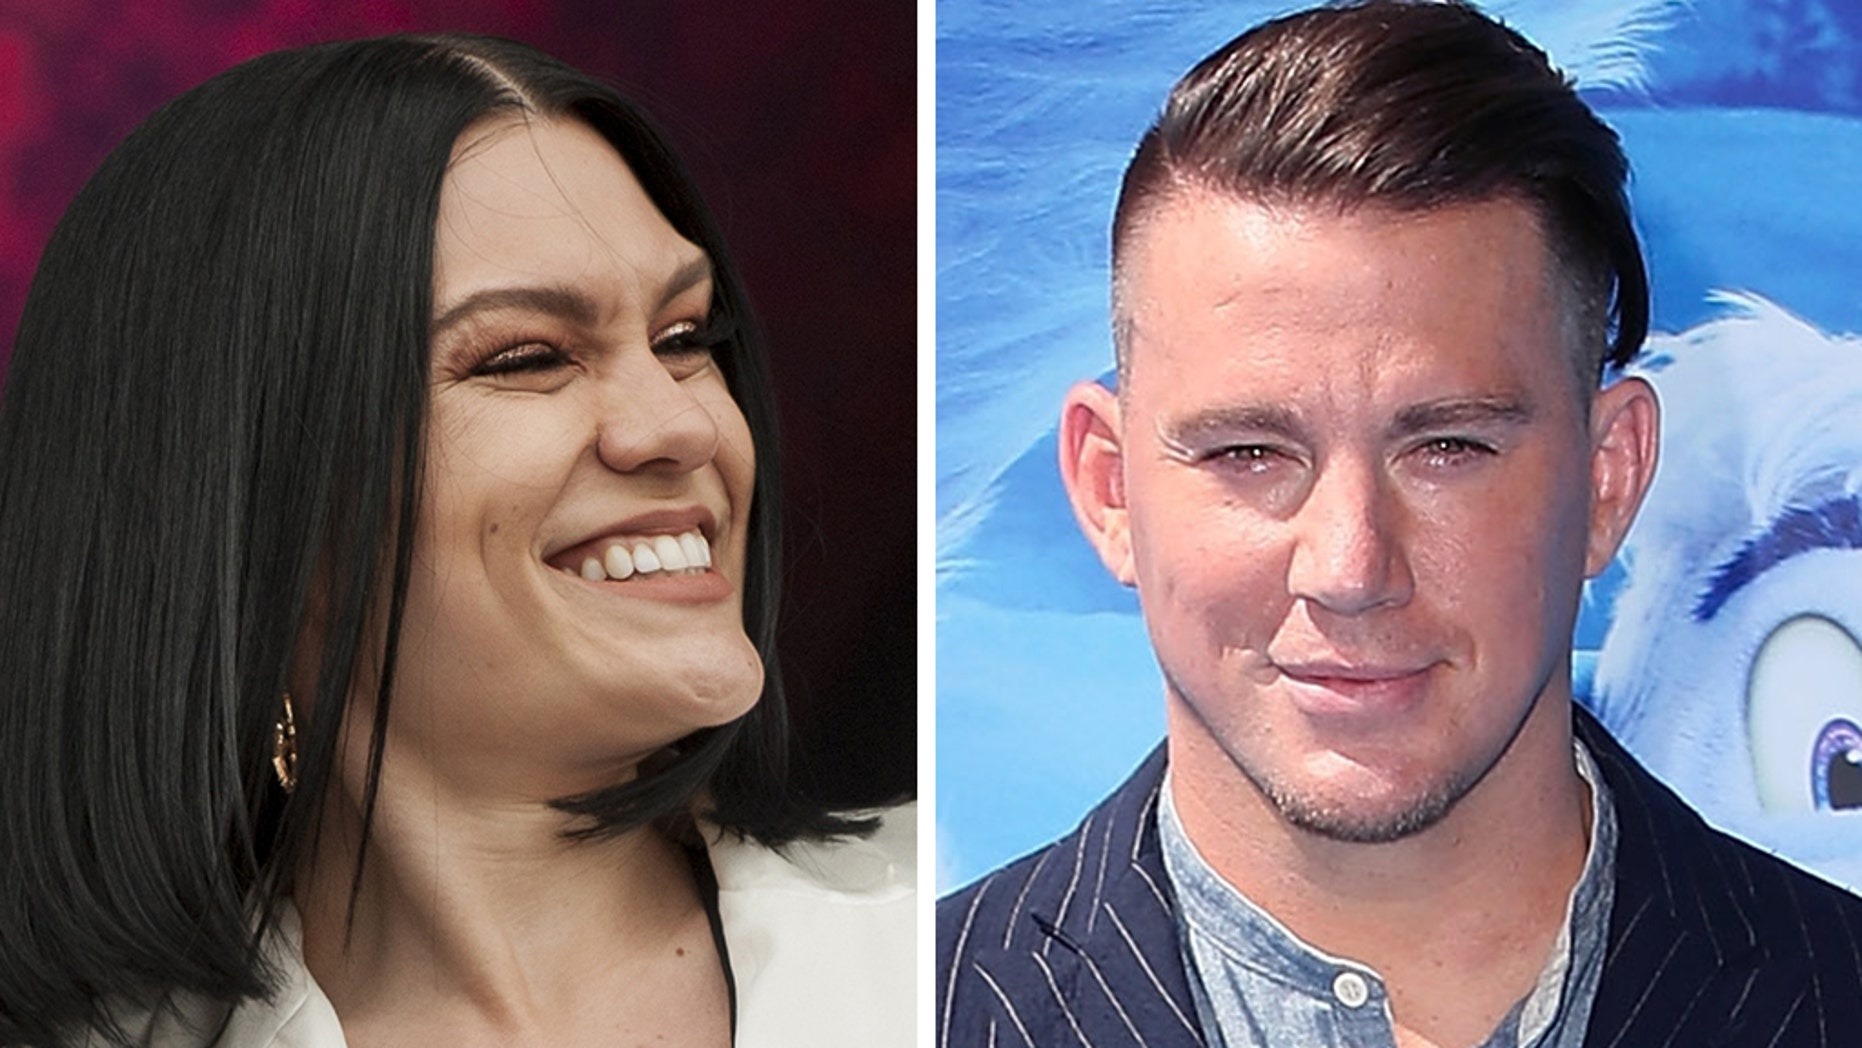 Jessie J and Channing Tatum are reportedly dating according to multiple outlets